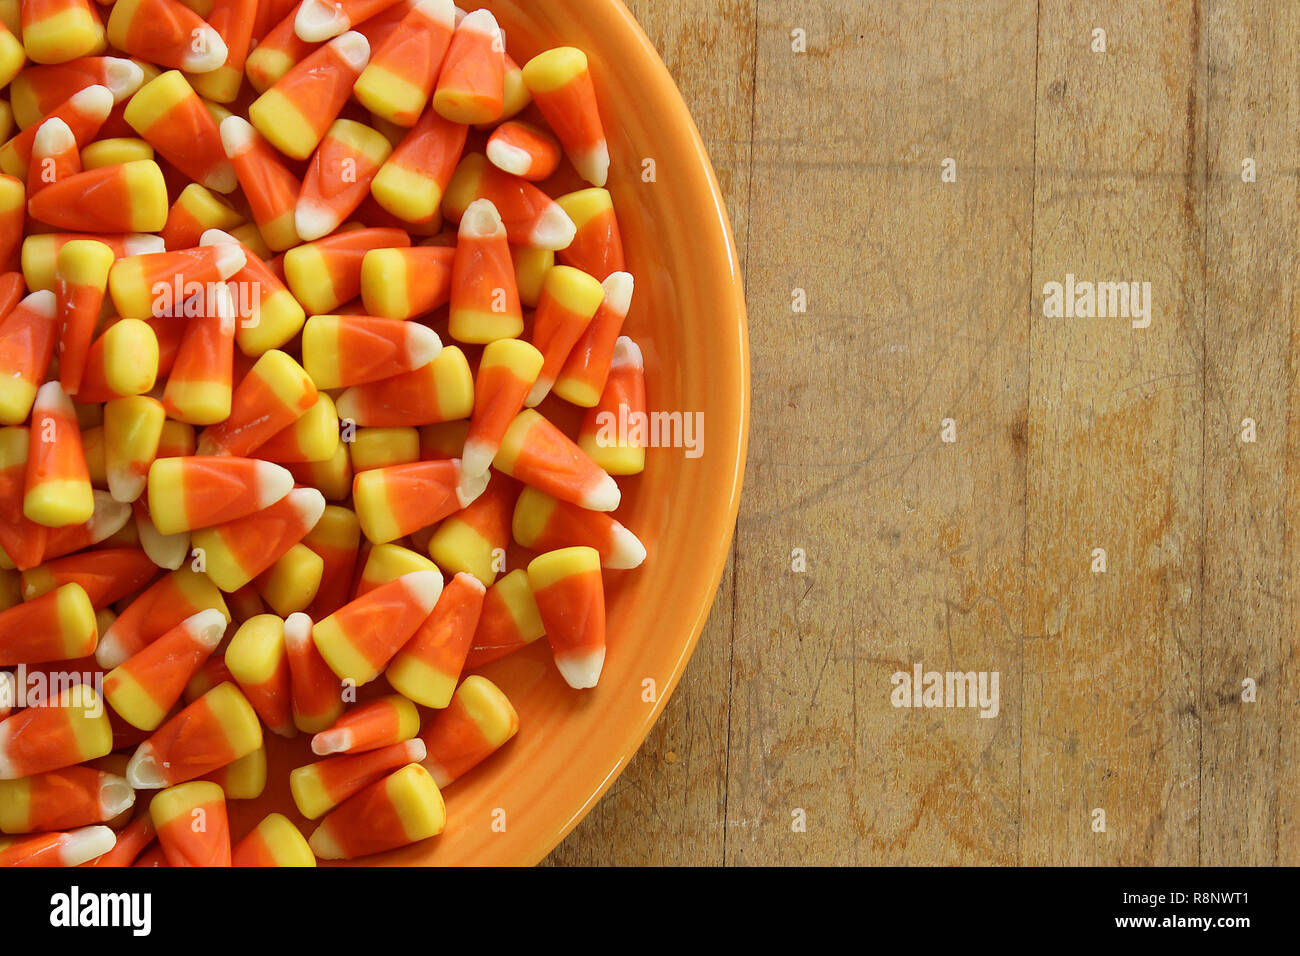 Bowl of Halloween candy corn. Copy space. - Stock Image